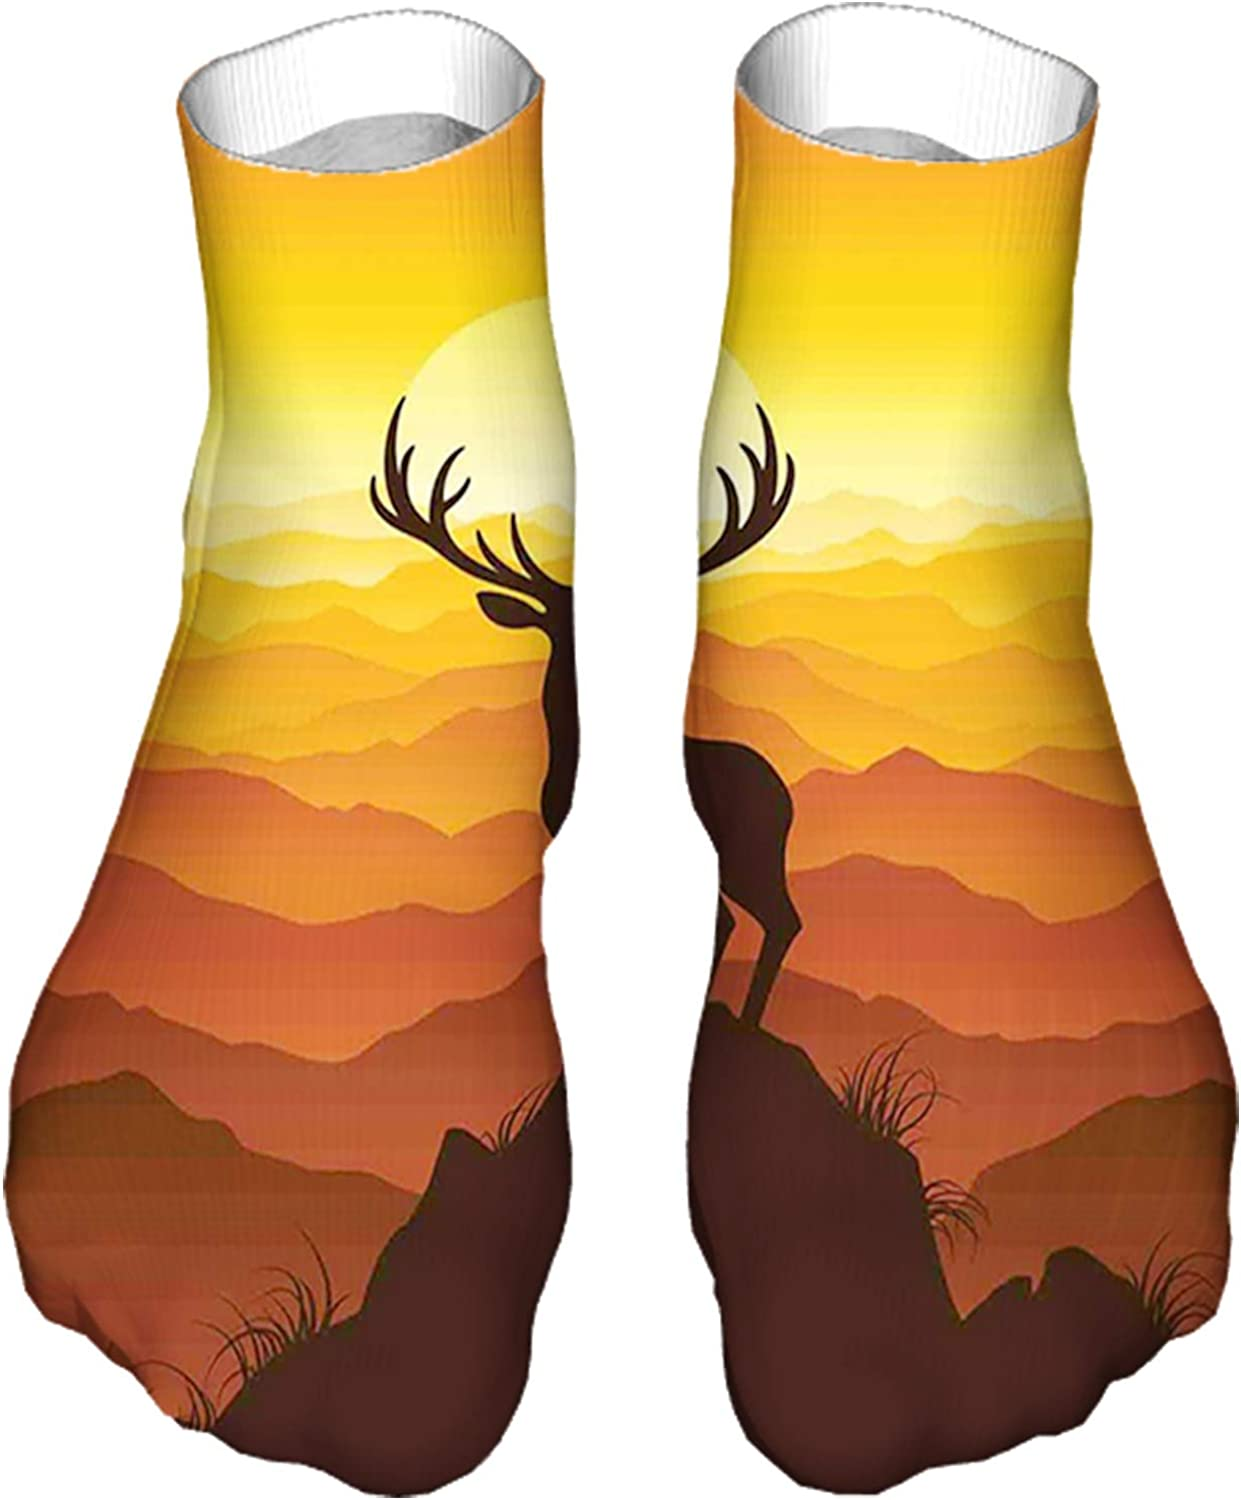 Women's Colorful Patterned Unisex Low Cut/No Show Socks,Deer at Sunset Adventure Wildlife Panoramic Valley Hill